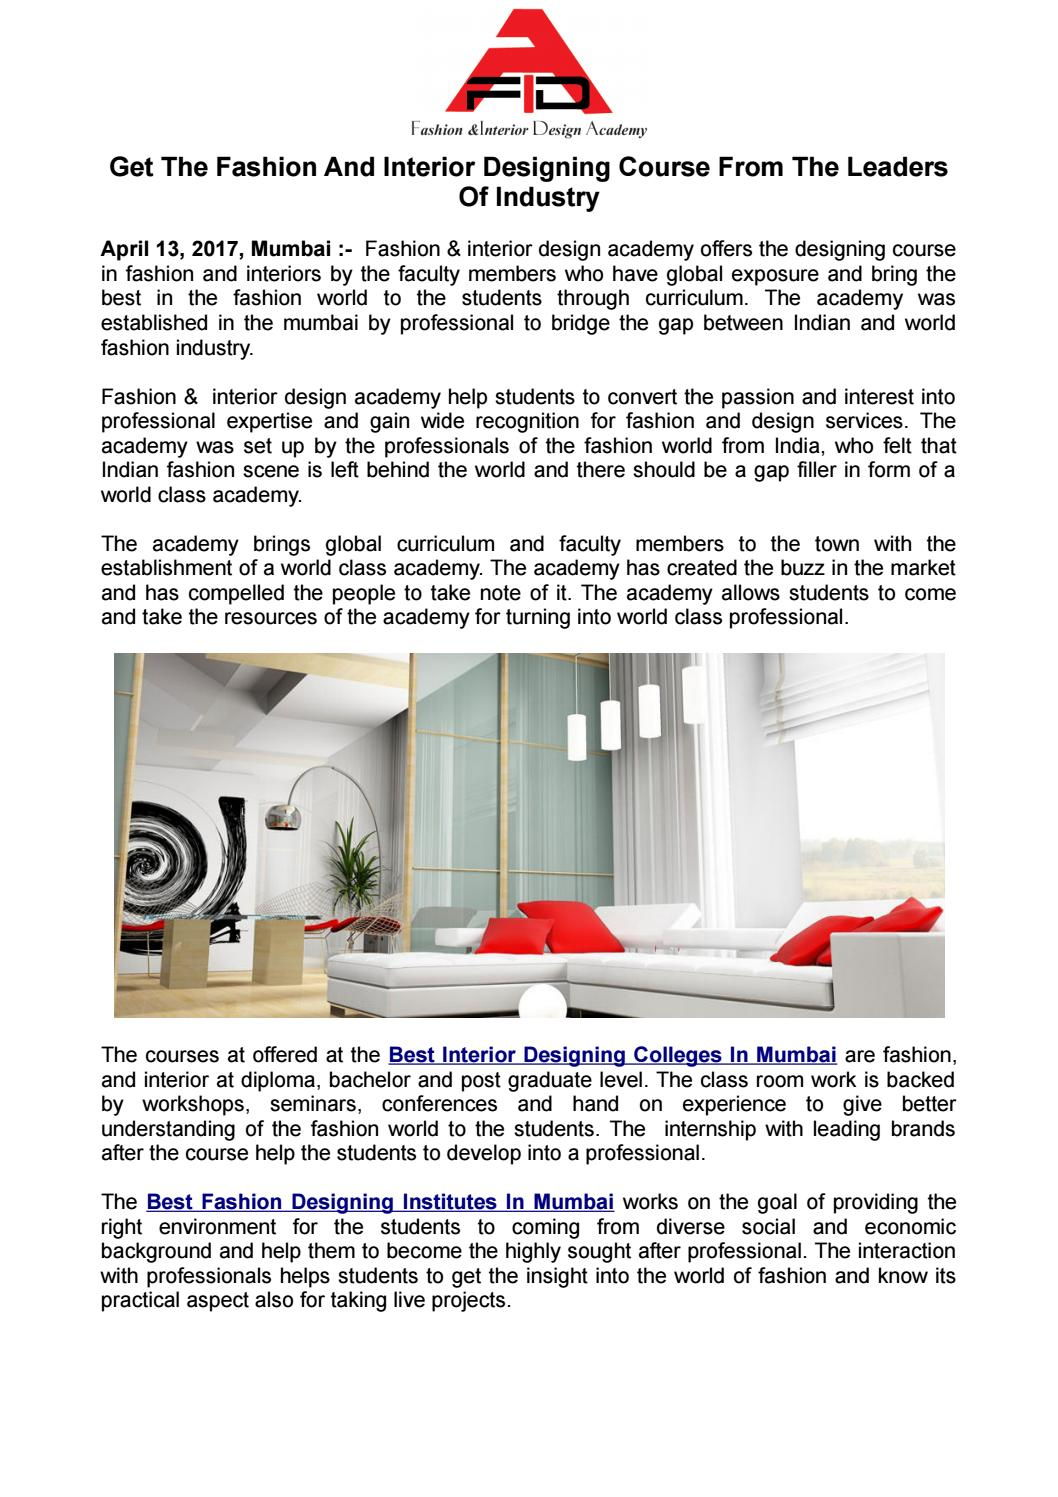 Get The Fashion And Interior Designing Course From The Leaders Of Industry By Fidaacademy Issuu